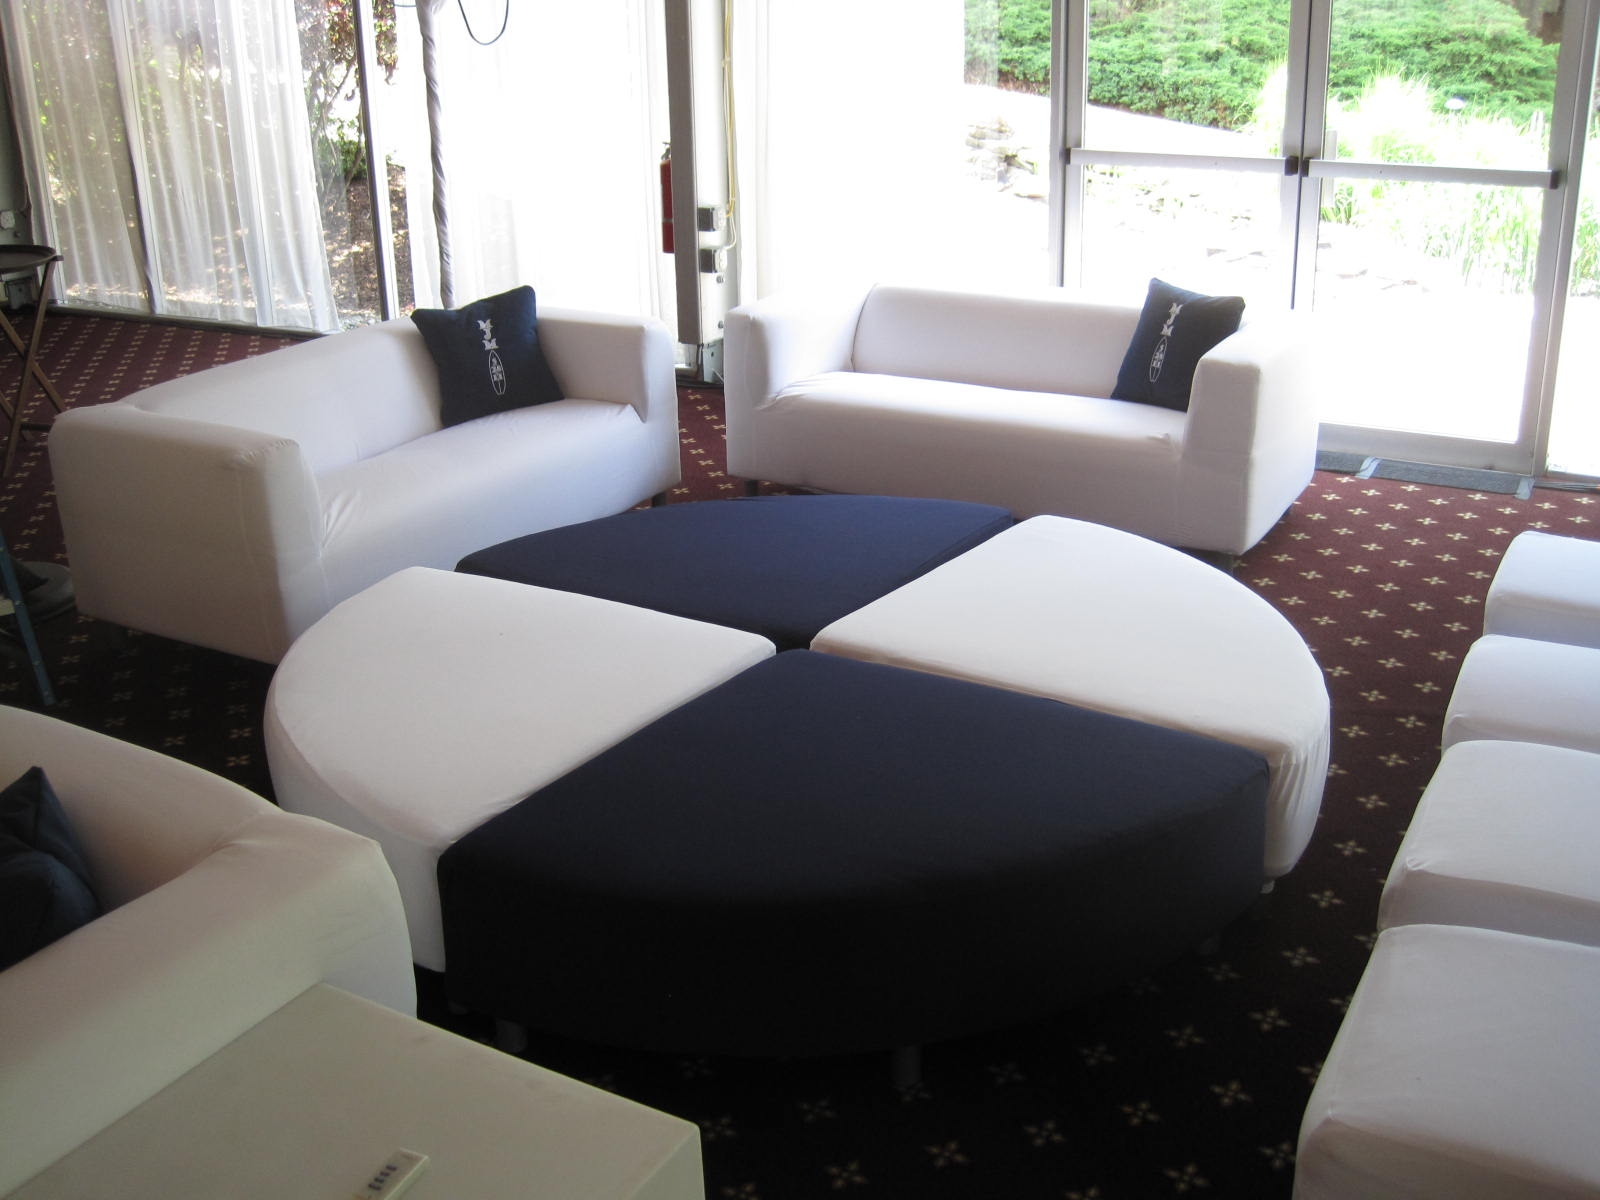 OTTOMAN WITH COUCHES